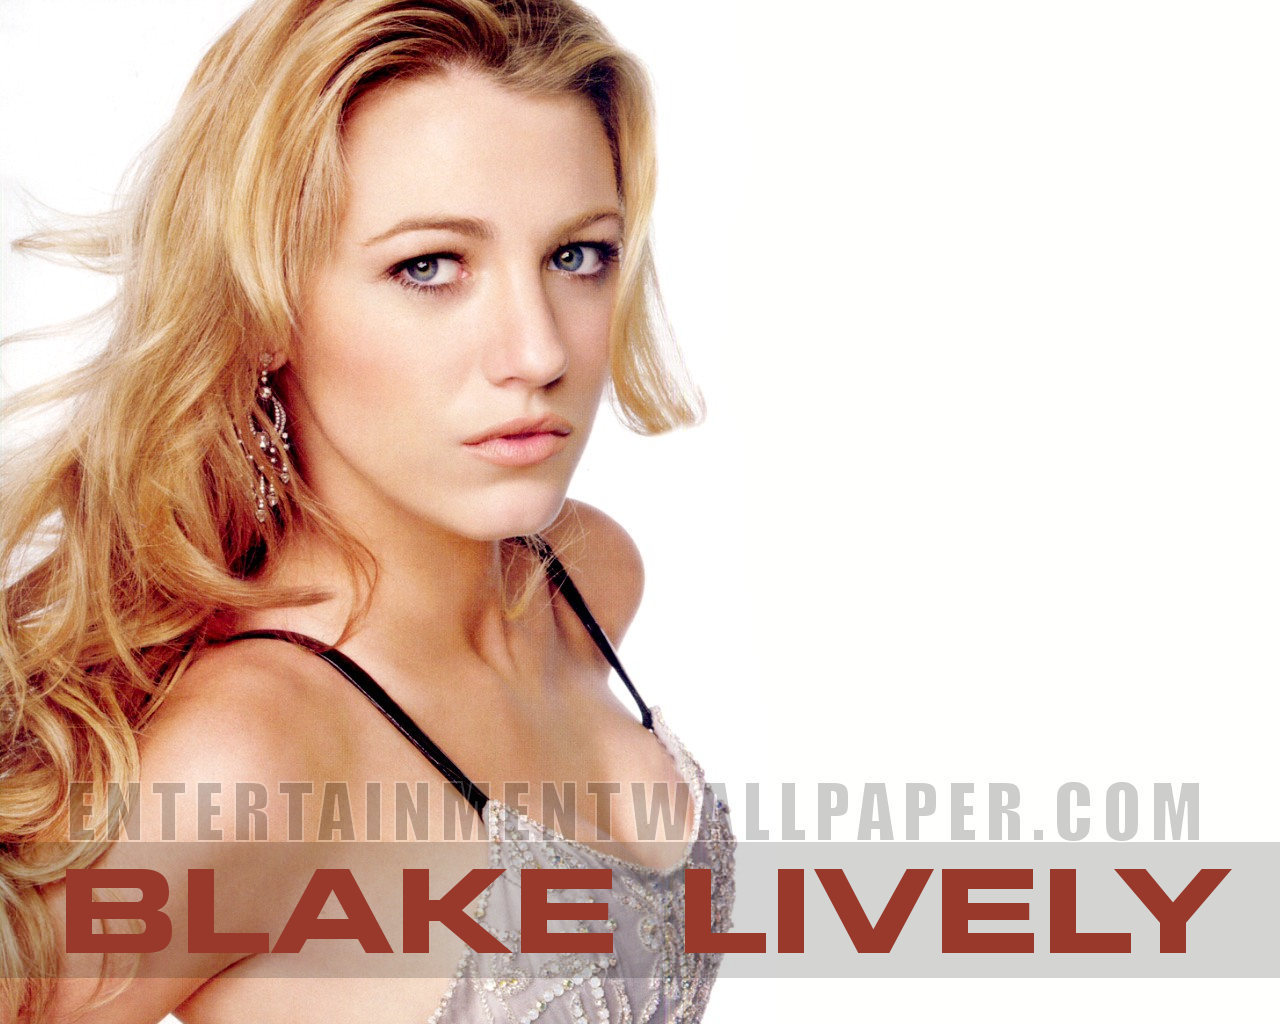 lively girls See blake lively nude pics from phone here on scandal planet exclusive pics of her boobs, ass & pussy real photos  100% free  visit now.